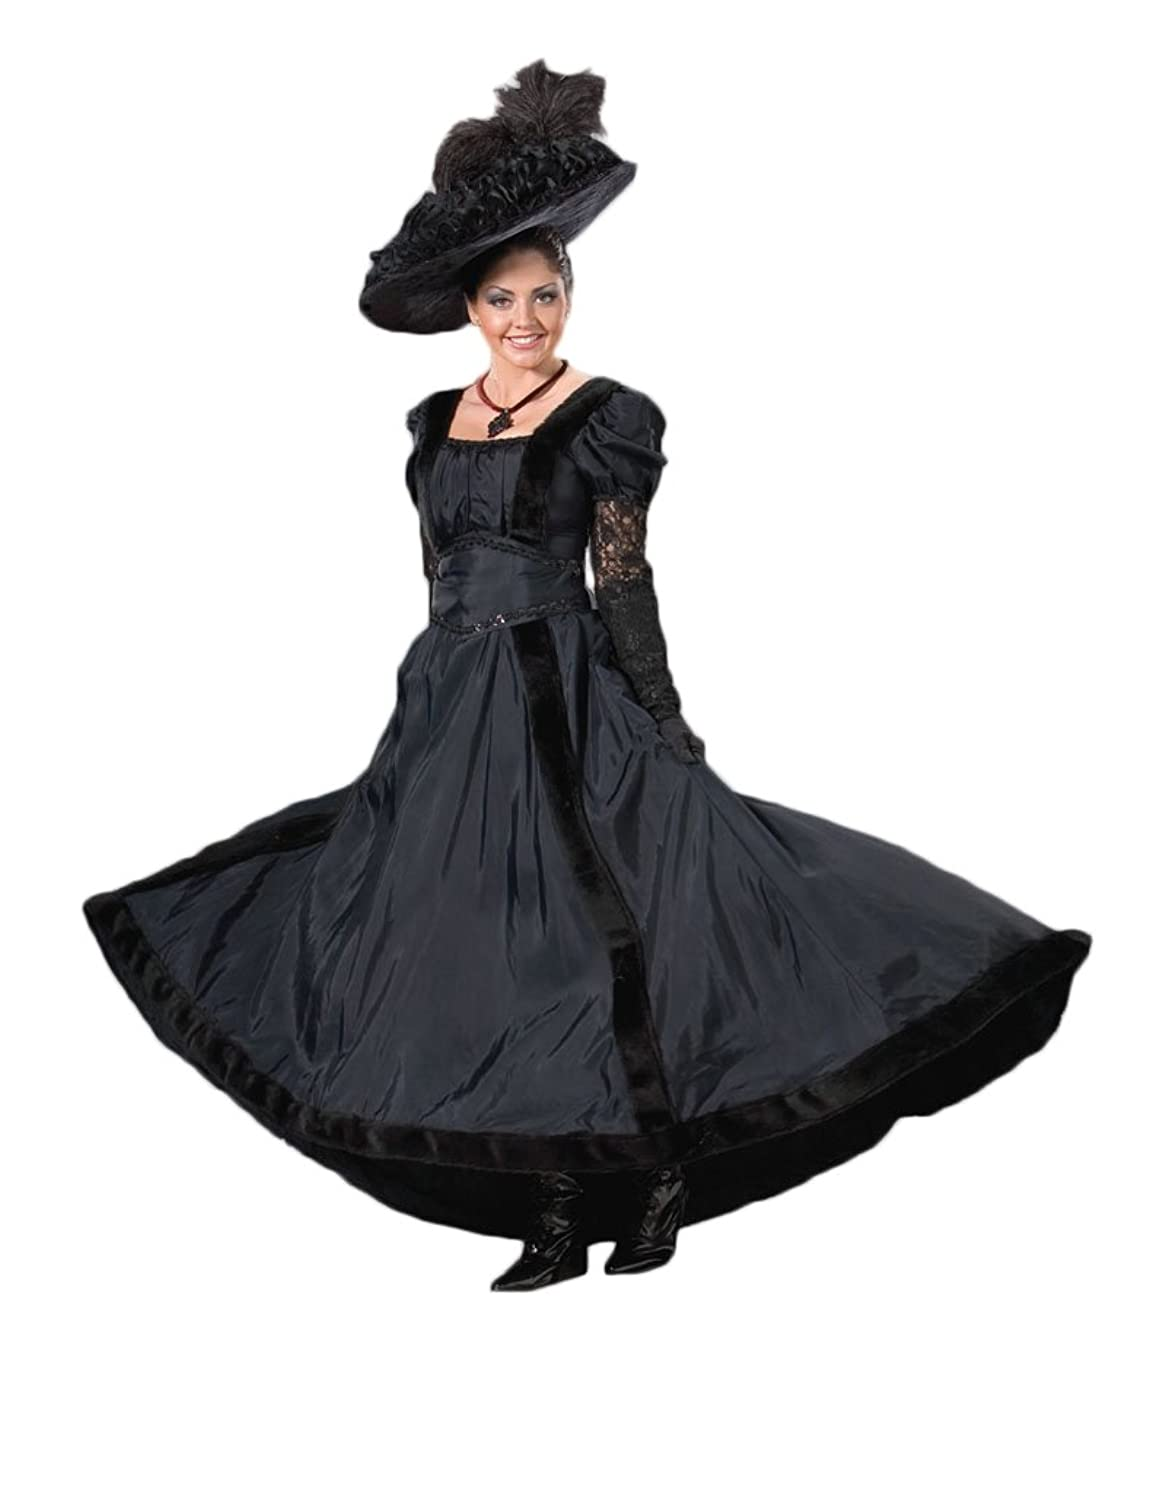 1900 Edwardian Dresses, Tea Party Dresses, White Lace Dresses  Victorian Titanic Dress $289.99 AT vintagedancer.com